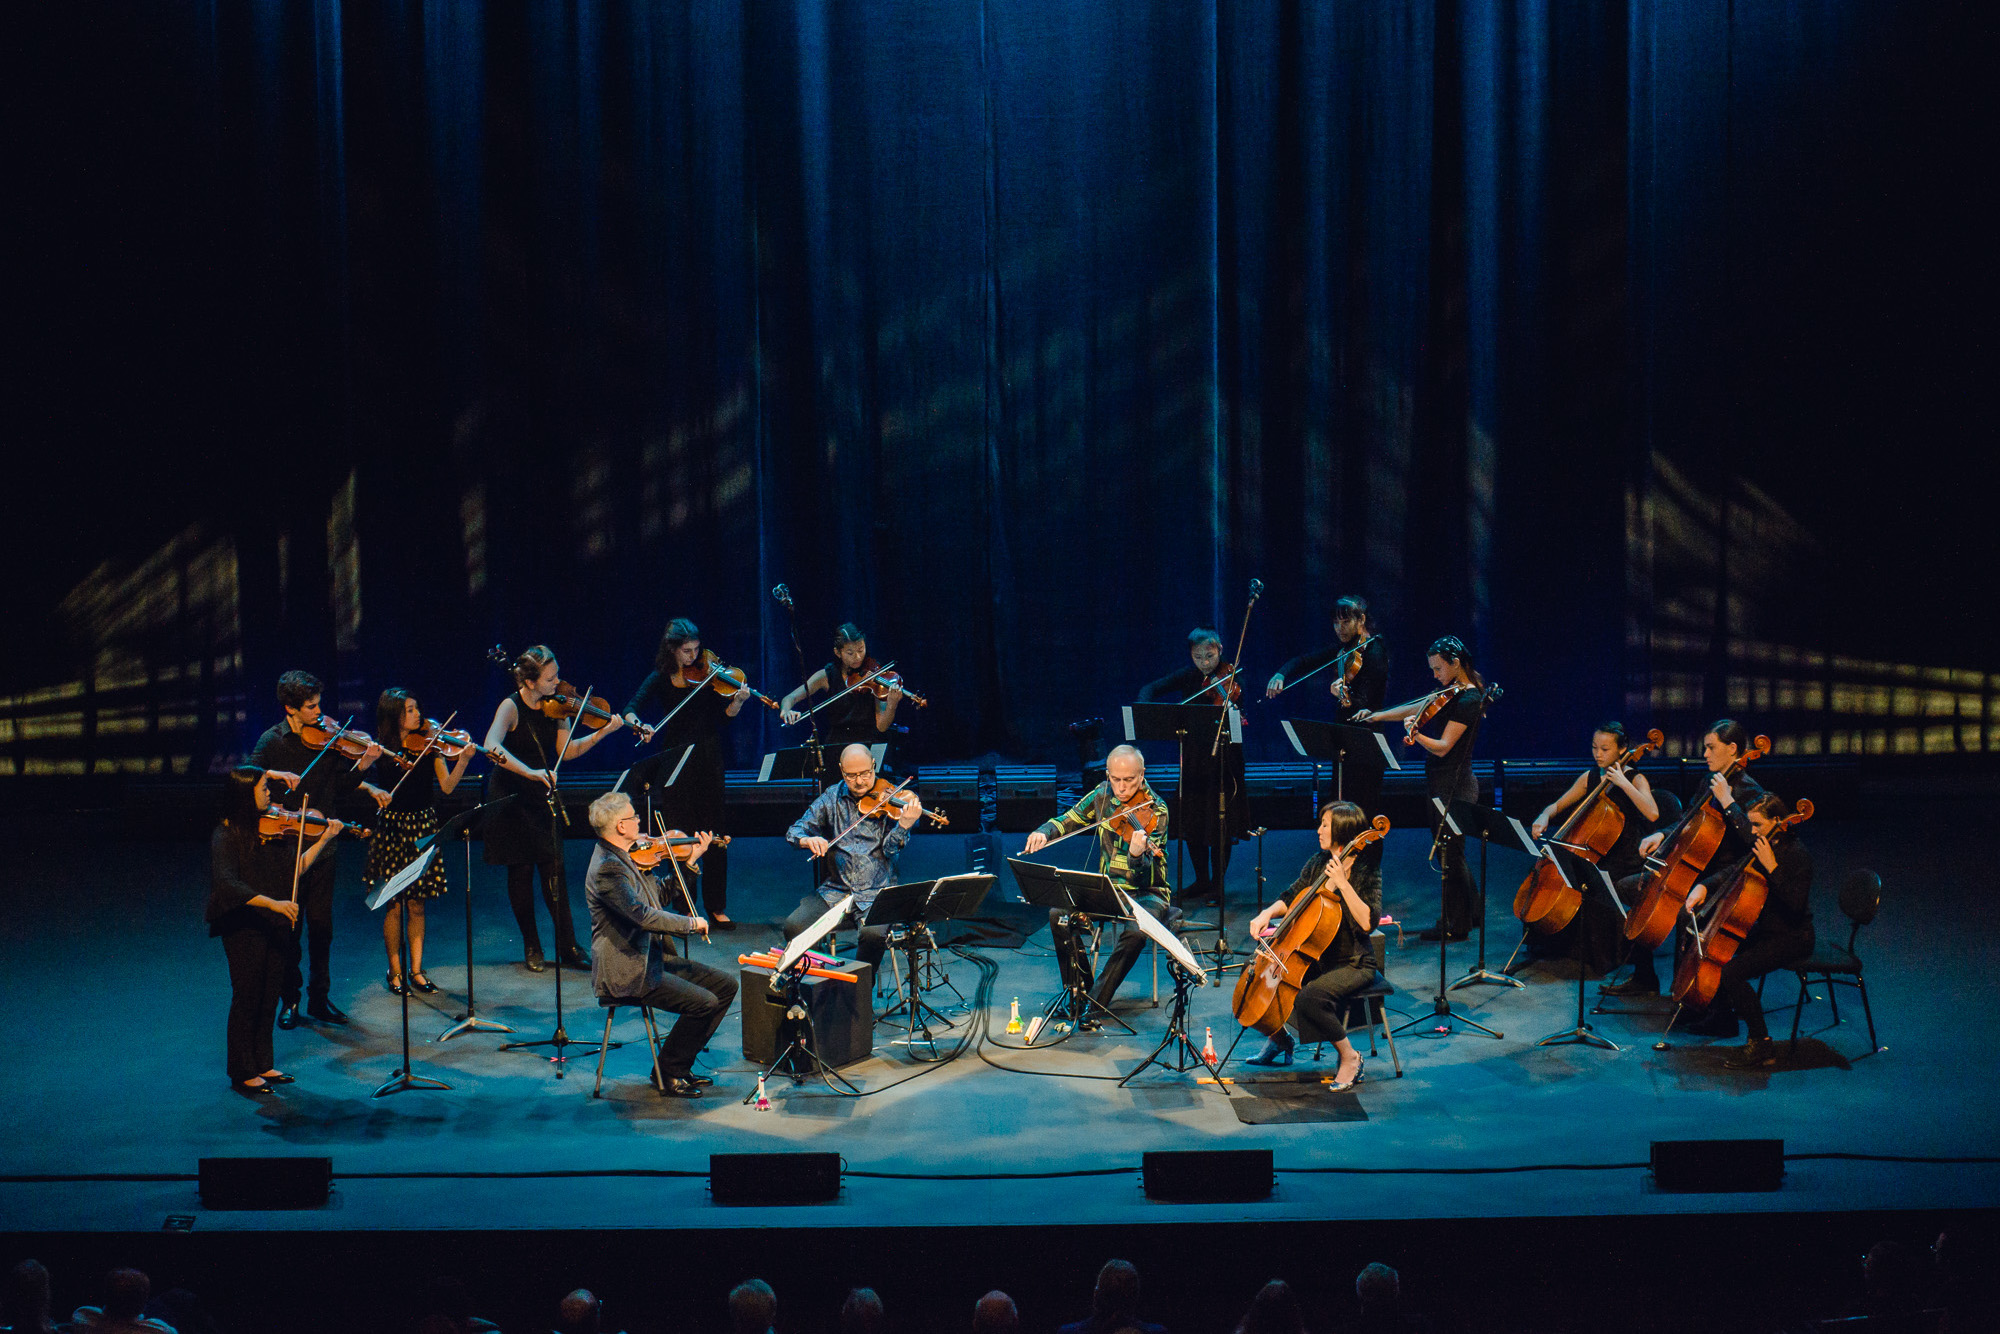 Kronos Quartet performing with students from Berkeley and Oakland, credit Lenny Gonzalez